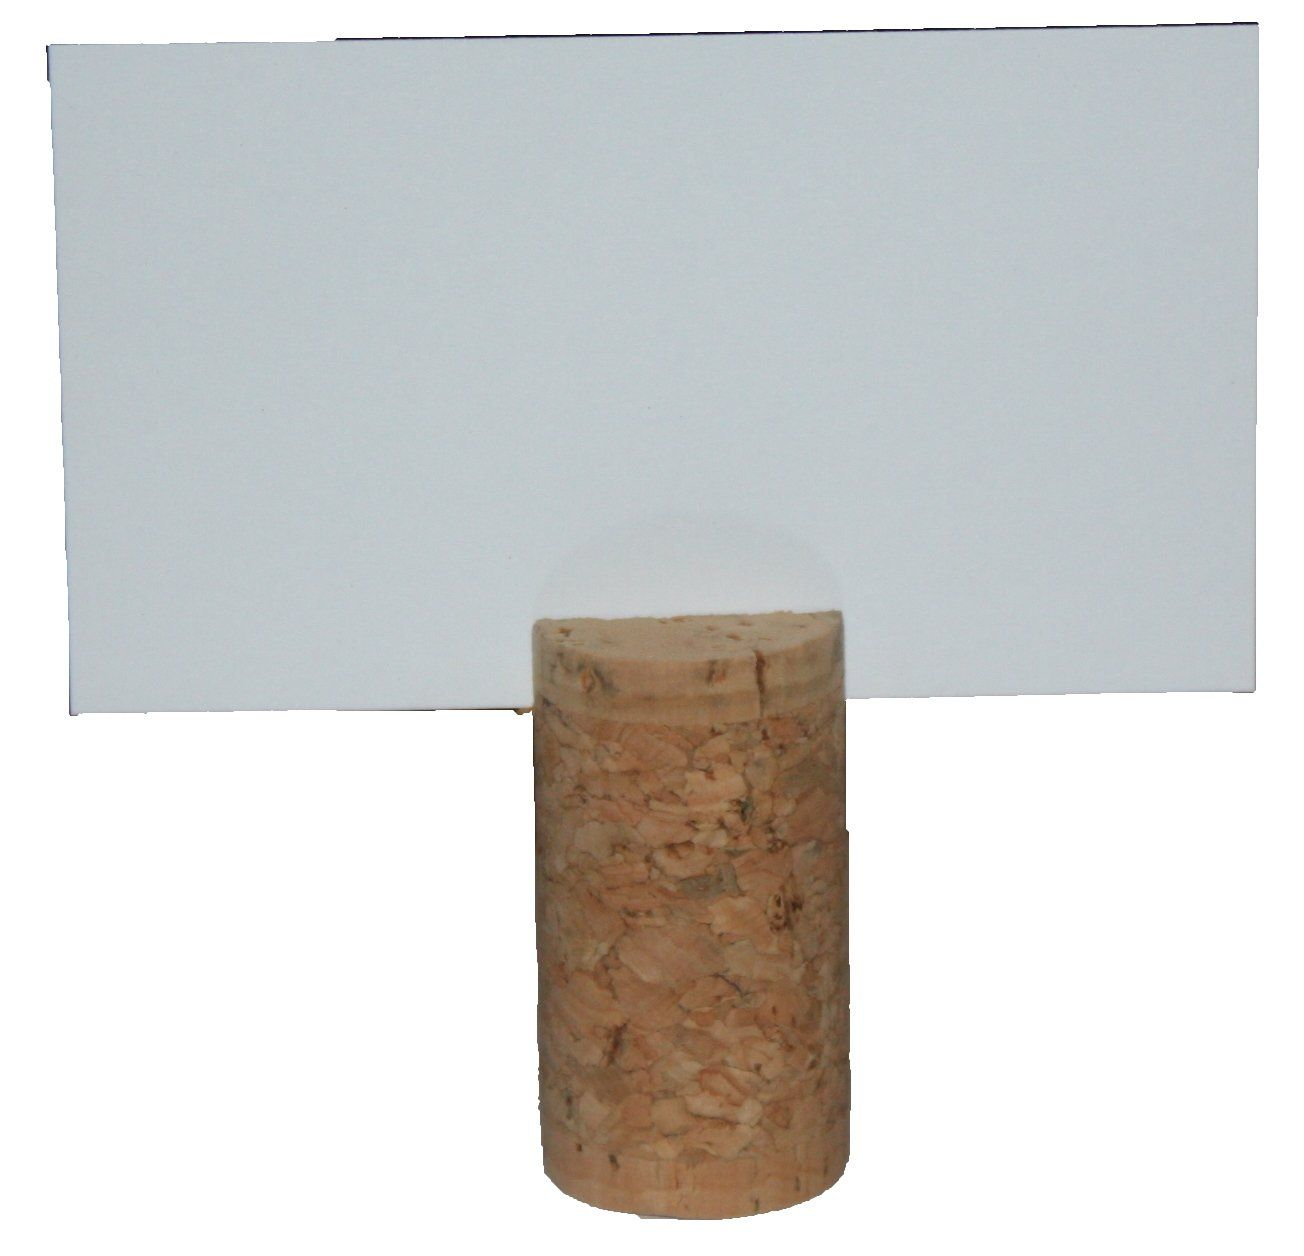 Real Cork Card Holders, Set of 25, Includes Cards, Blank Top Slit